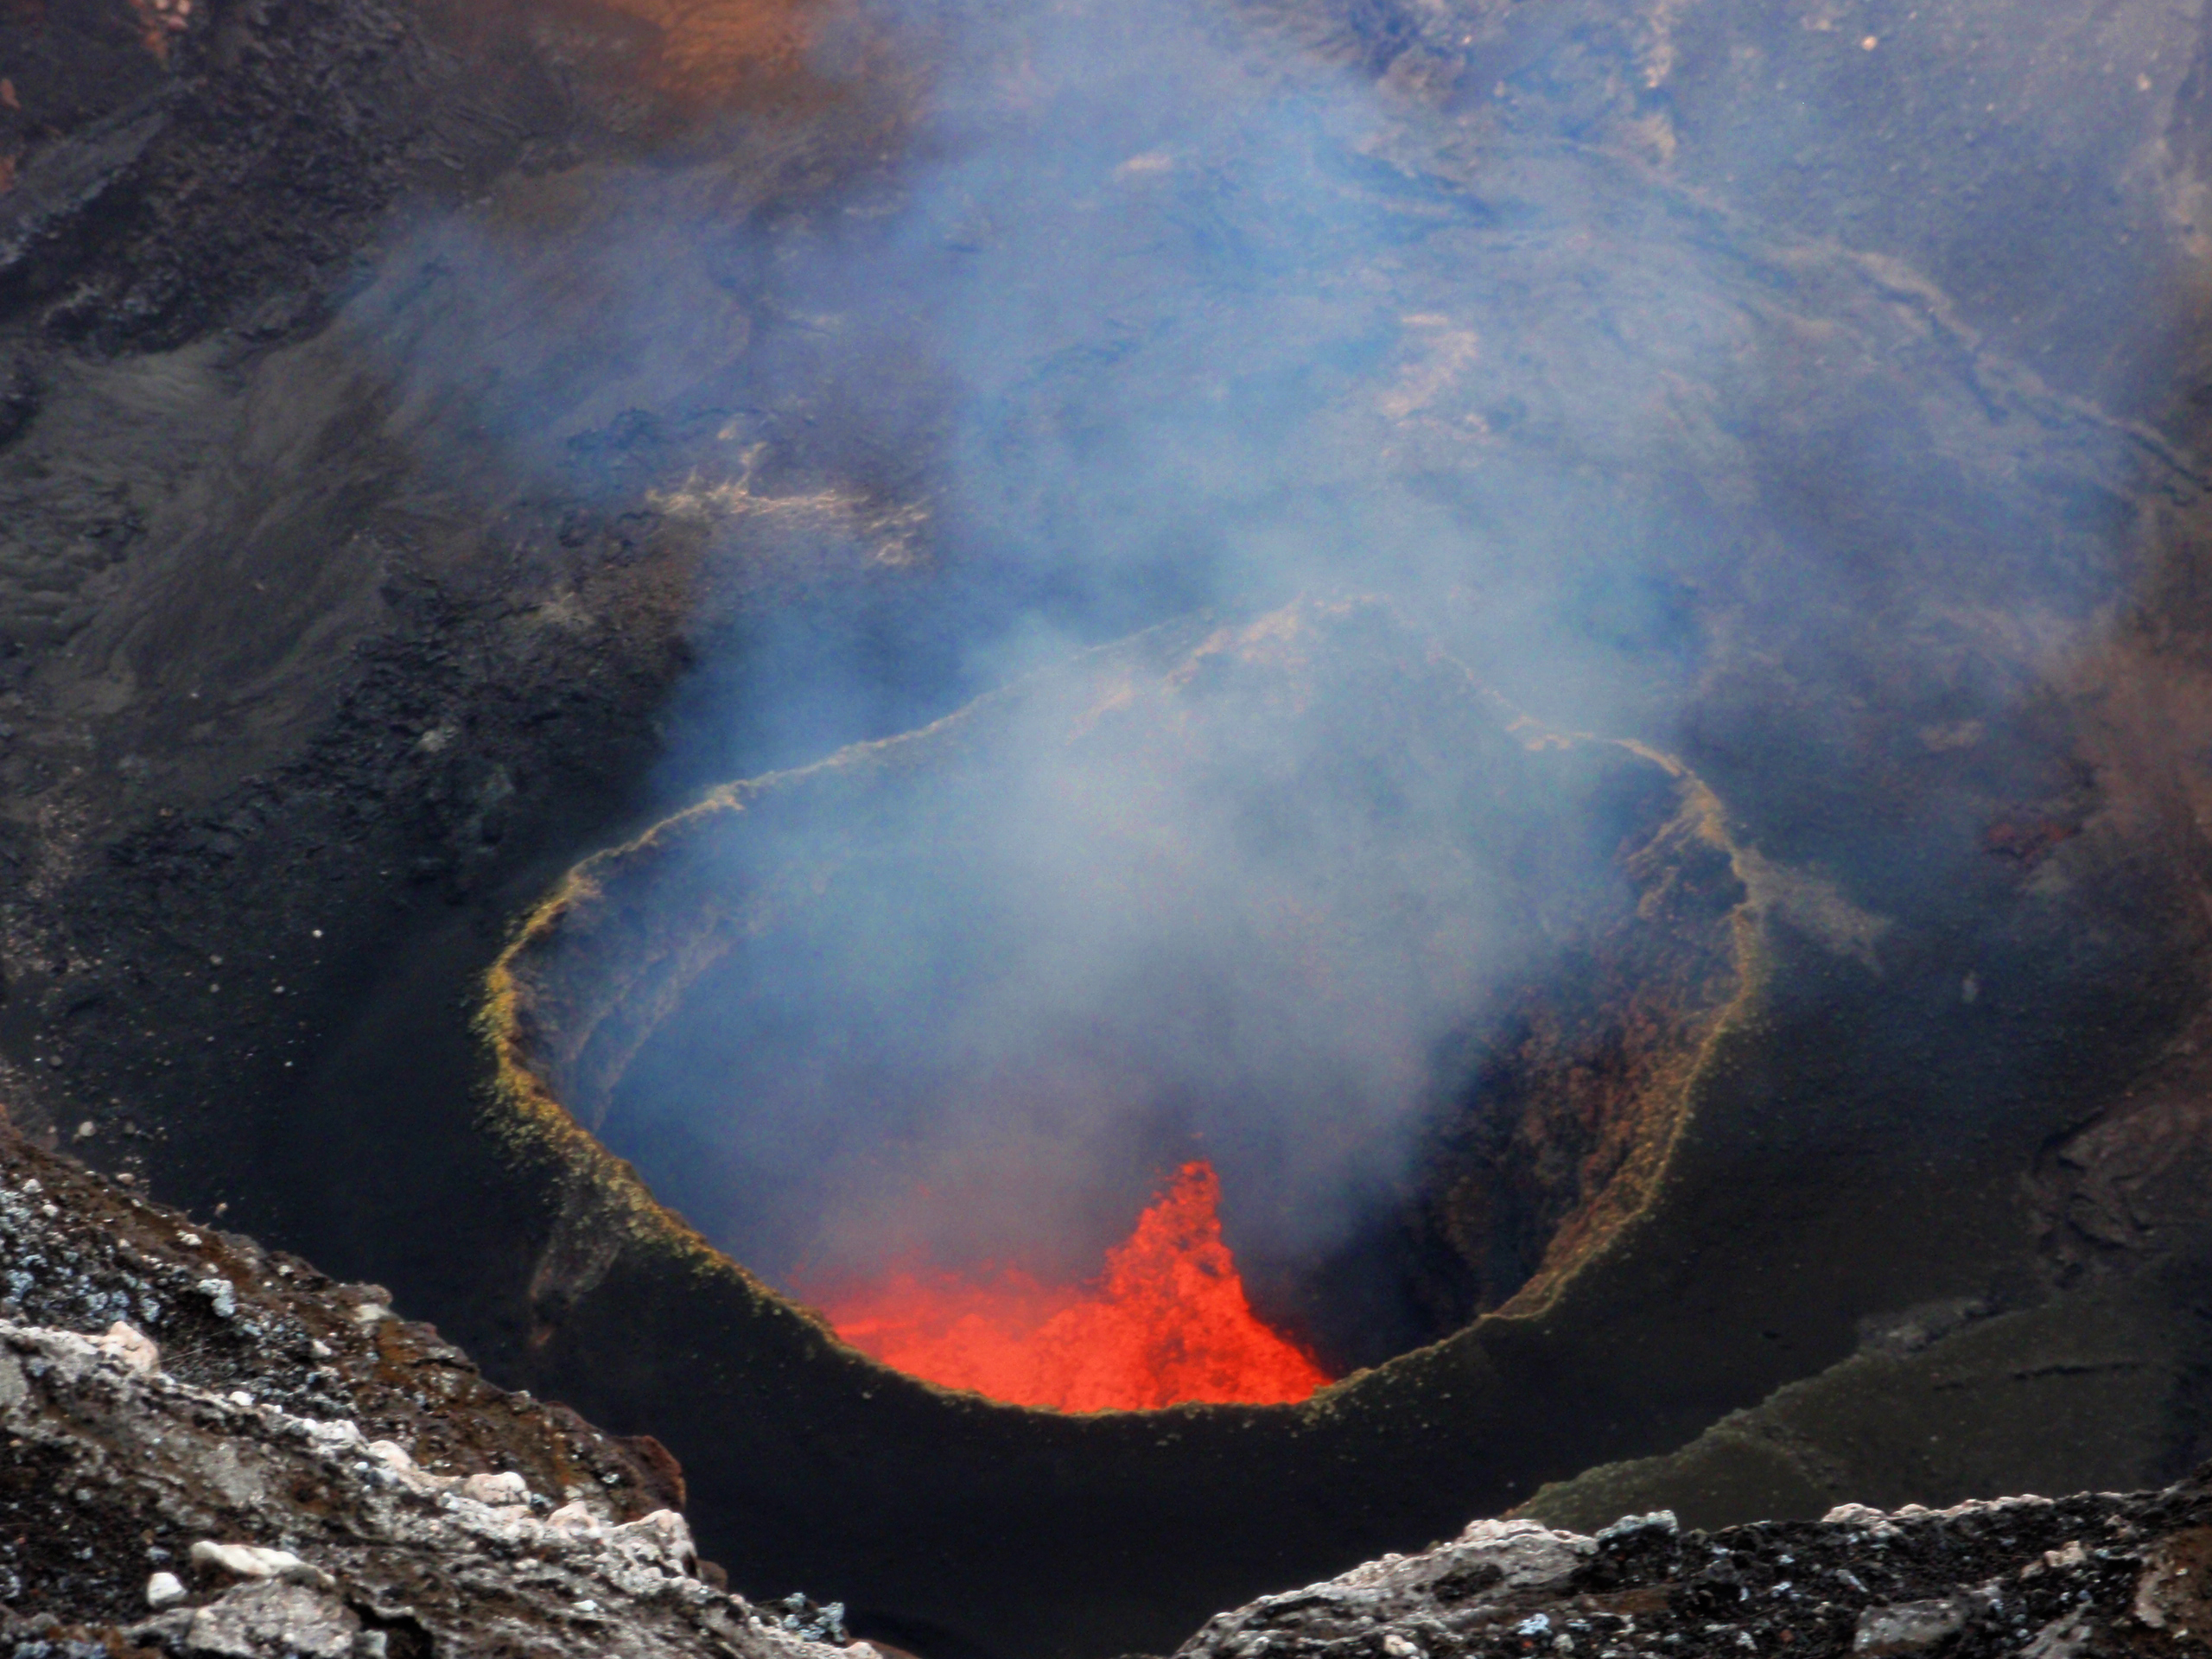 Hekla volcano - fire-breathing magnificence